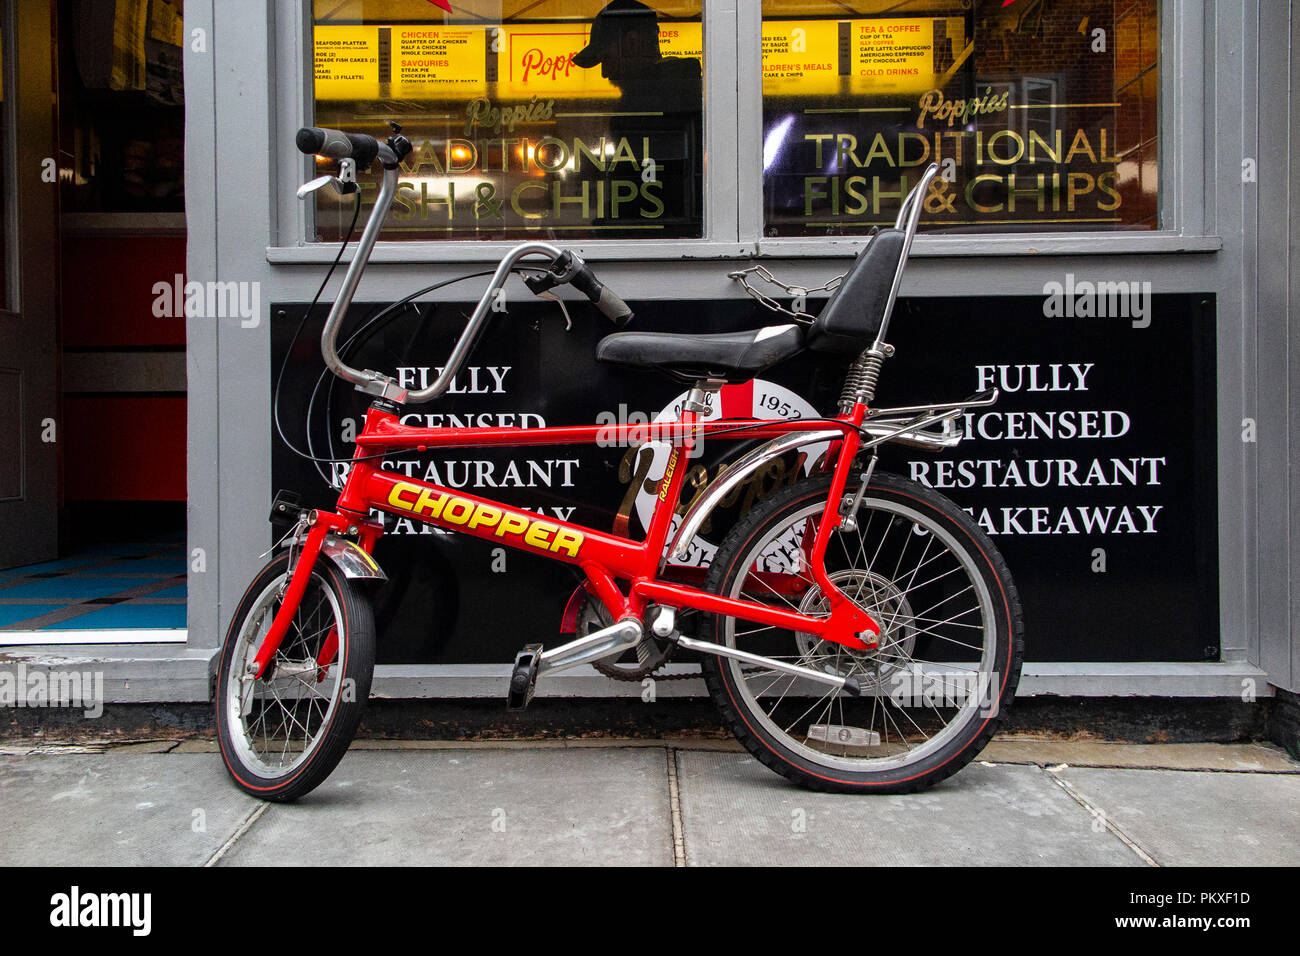 An immaculate Raleigh Chopper parked outside a fish and chip shop in London's Soho - Stock Image